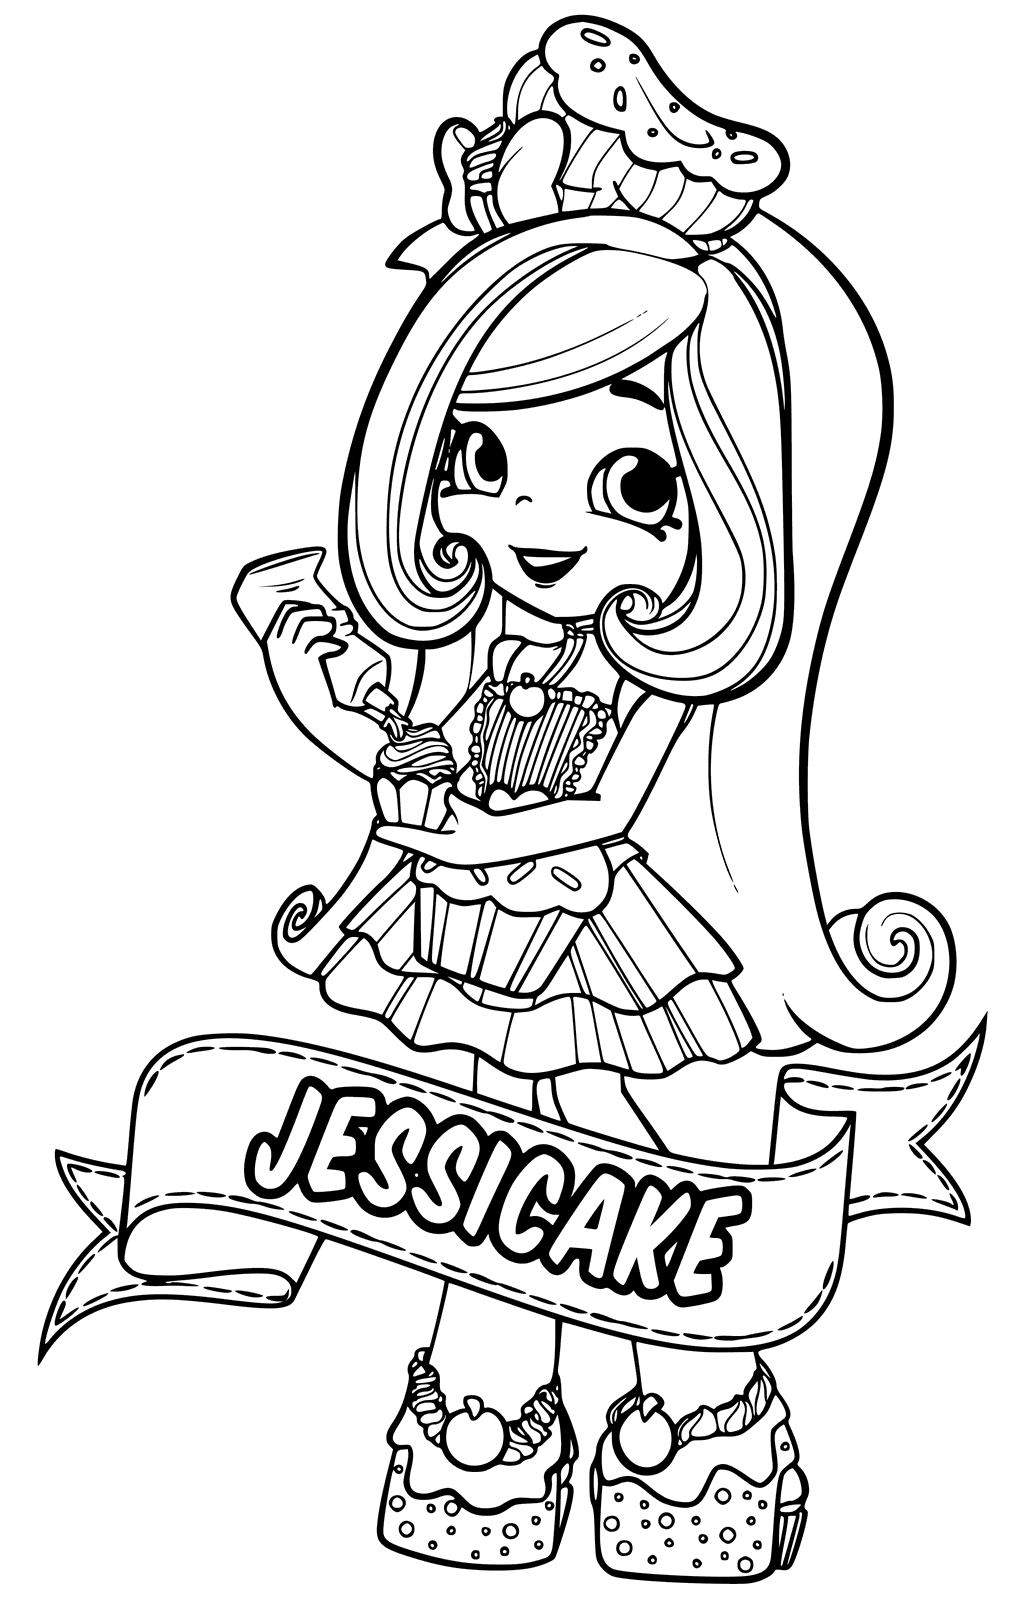 JessiCake Shoppies Coloring Pages